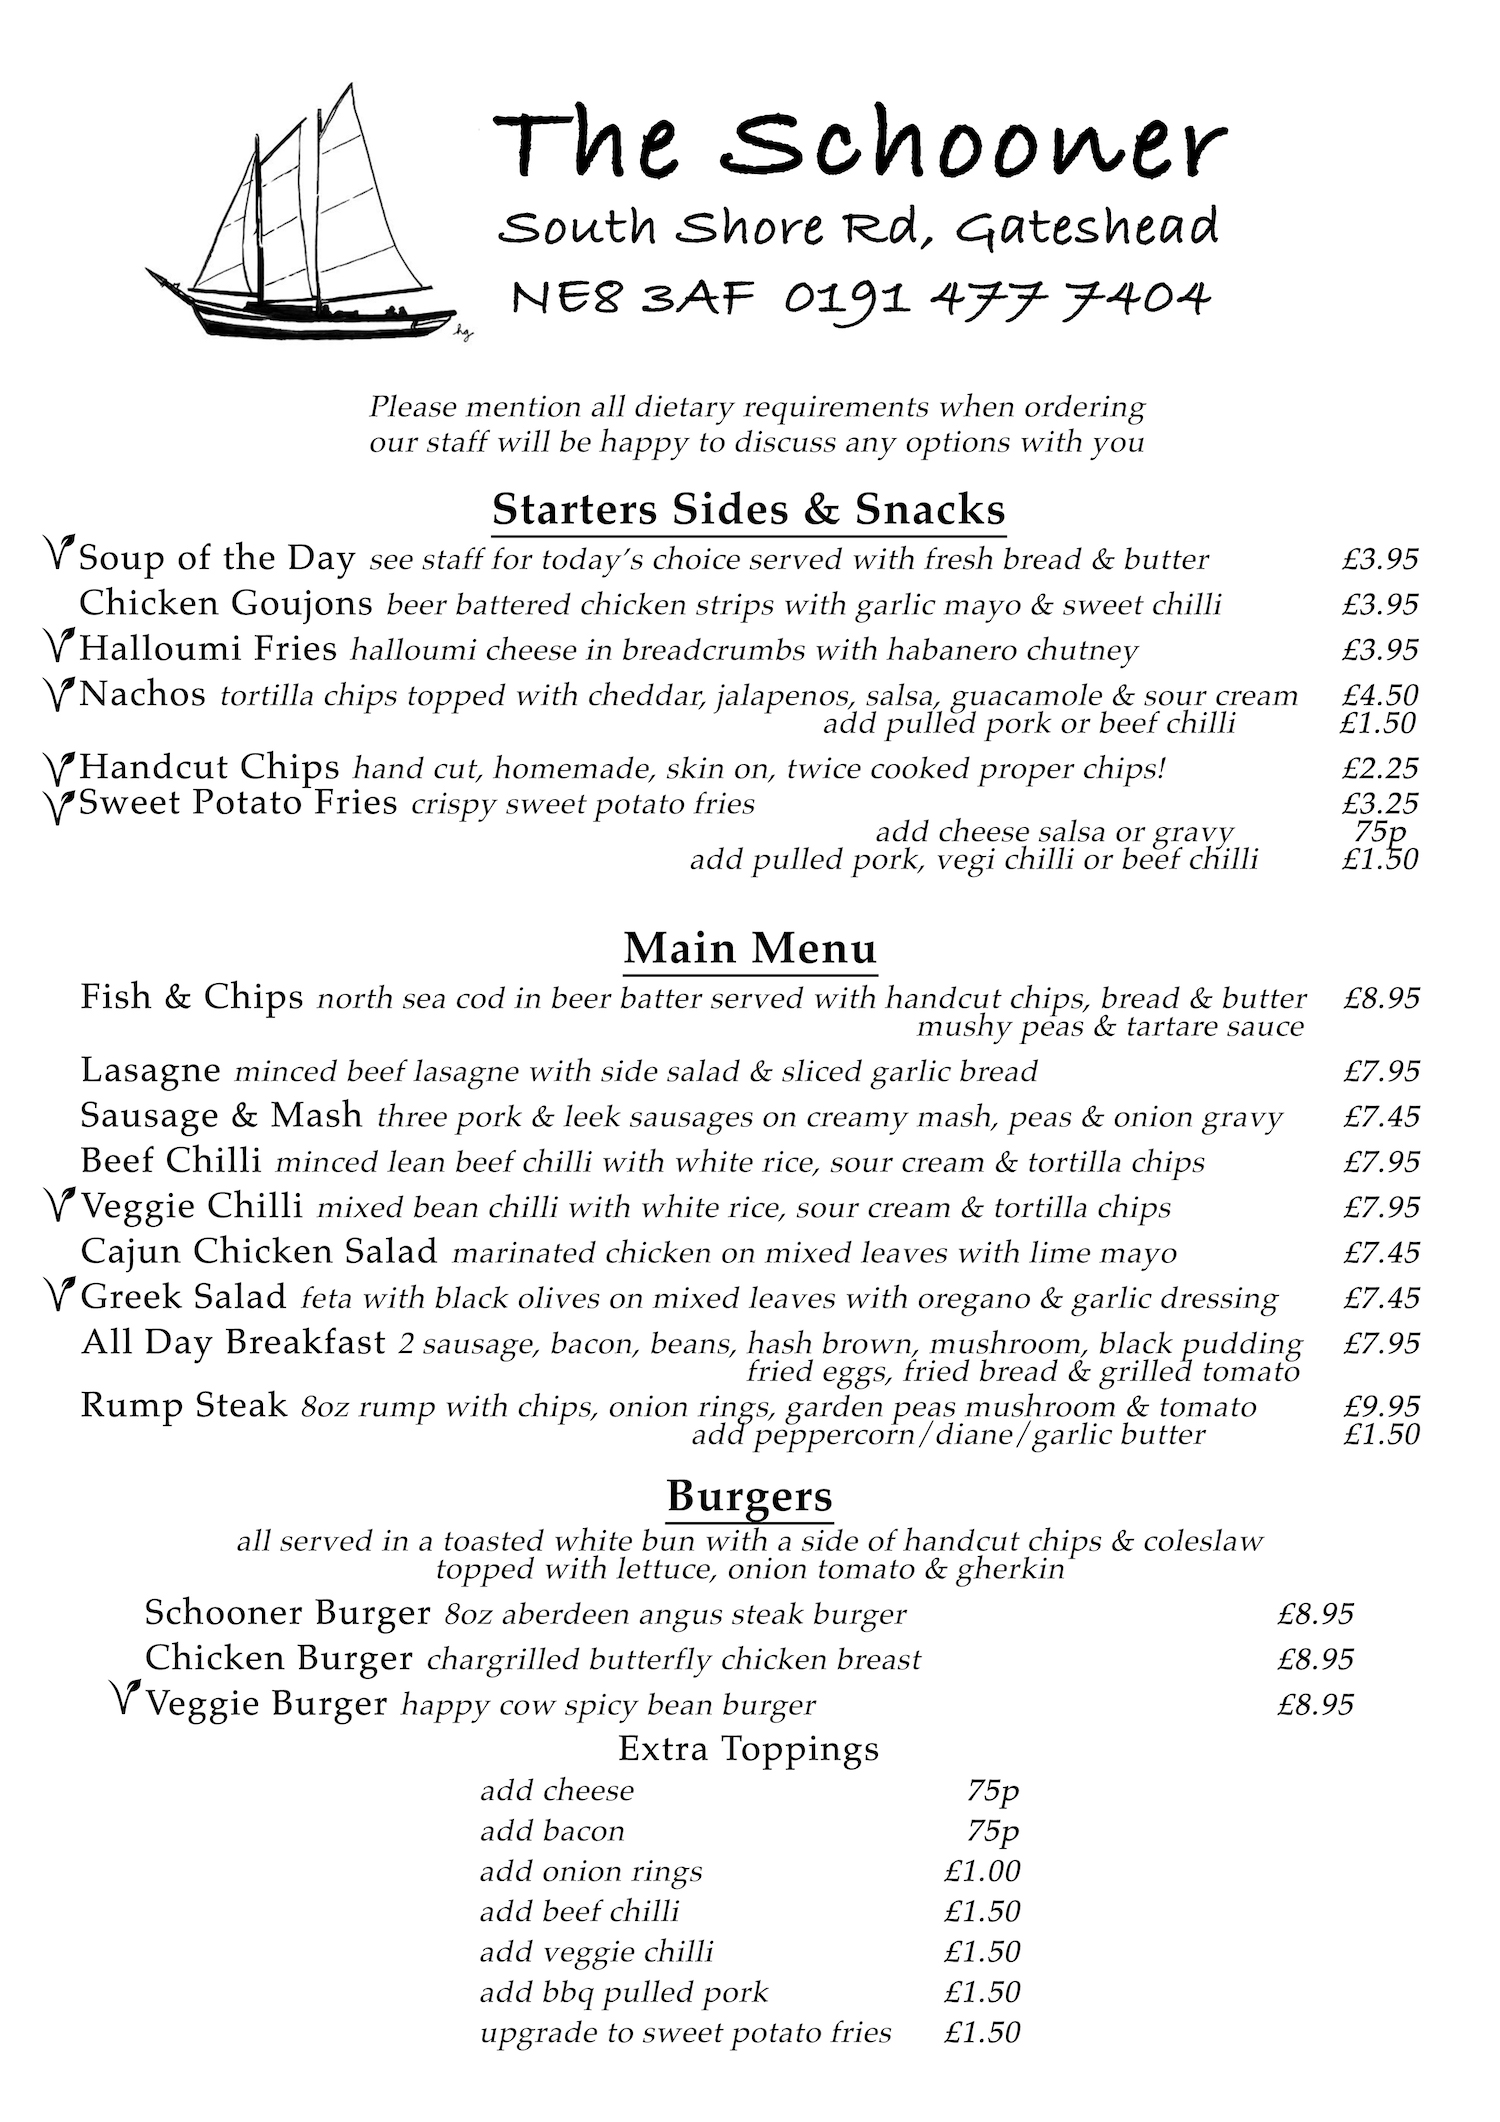 The Schooner Pub Menu Image 1